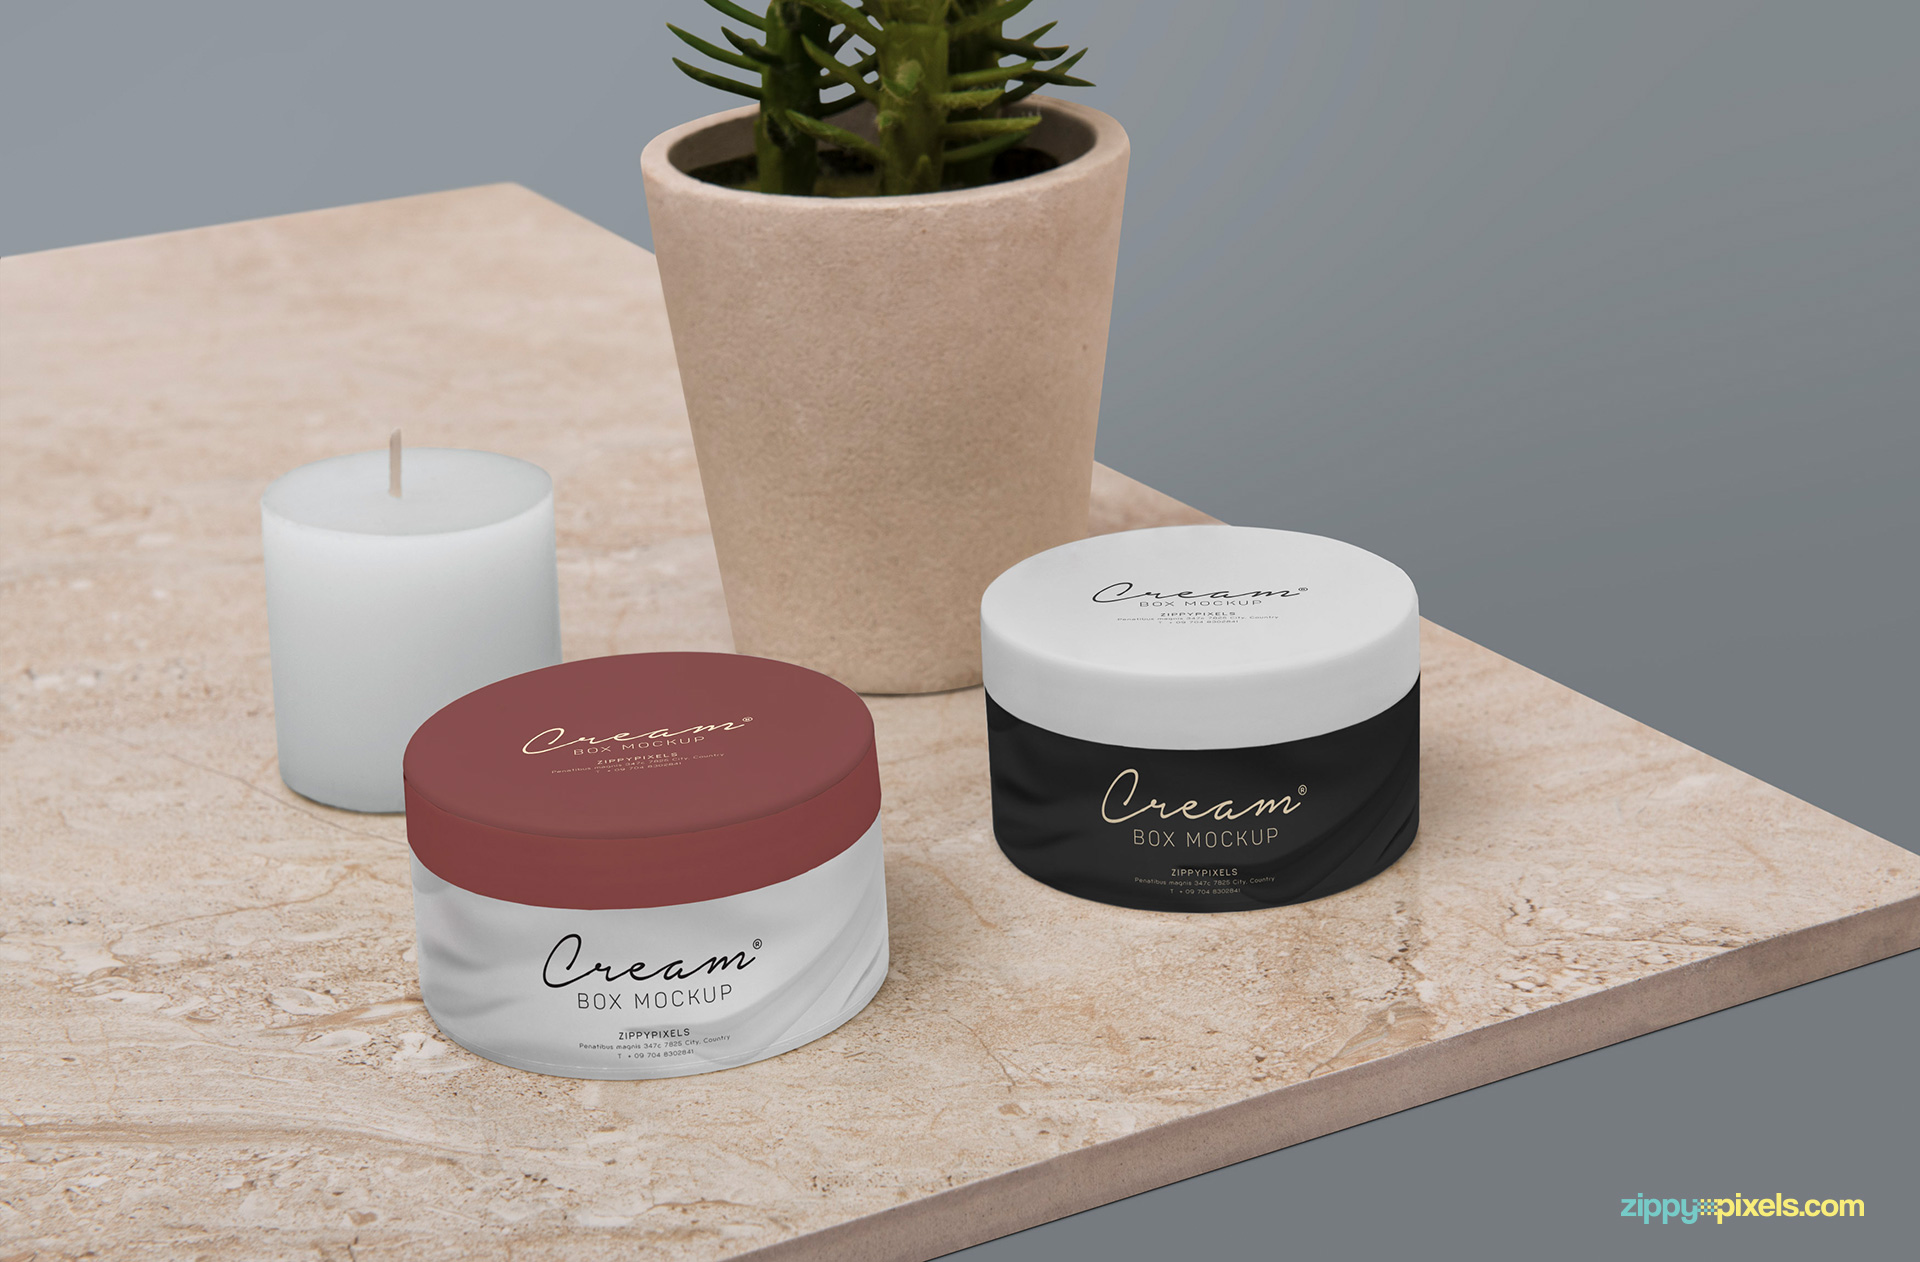 Gorgeous cream box mockup.